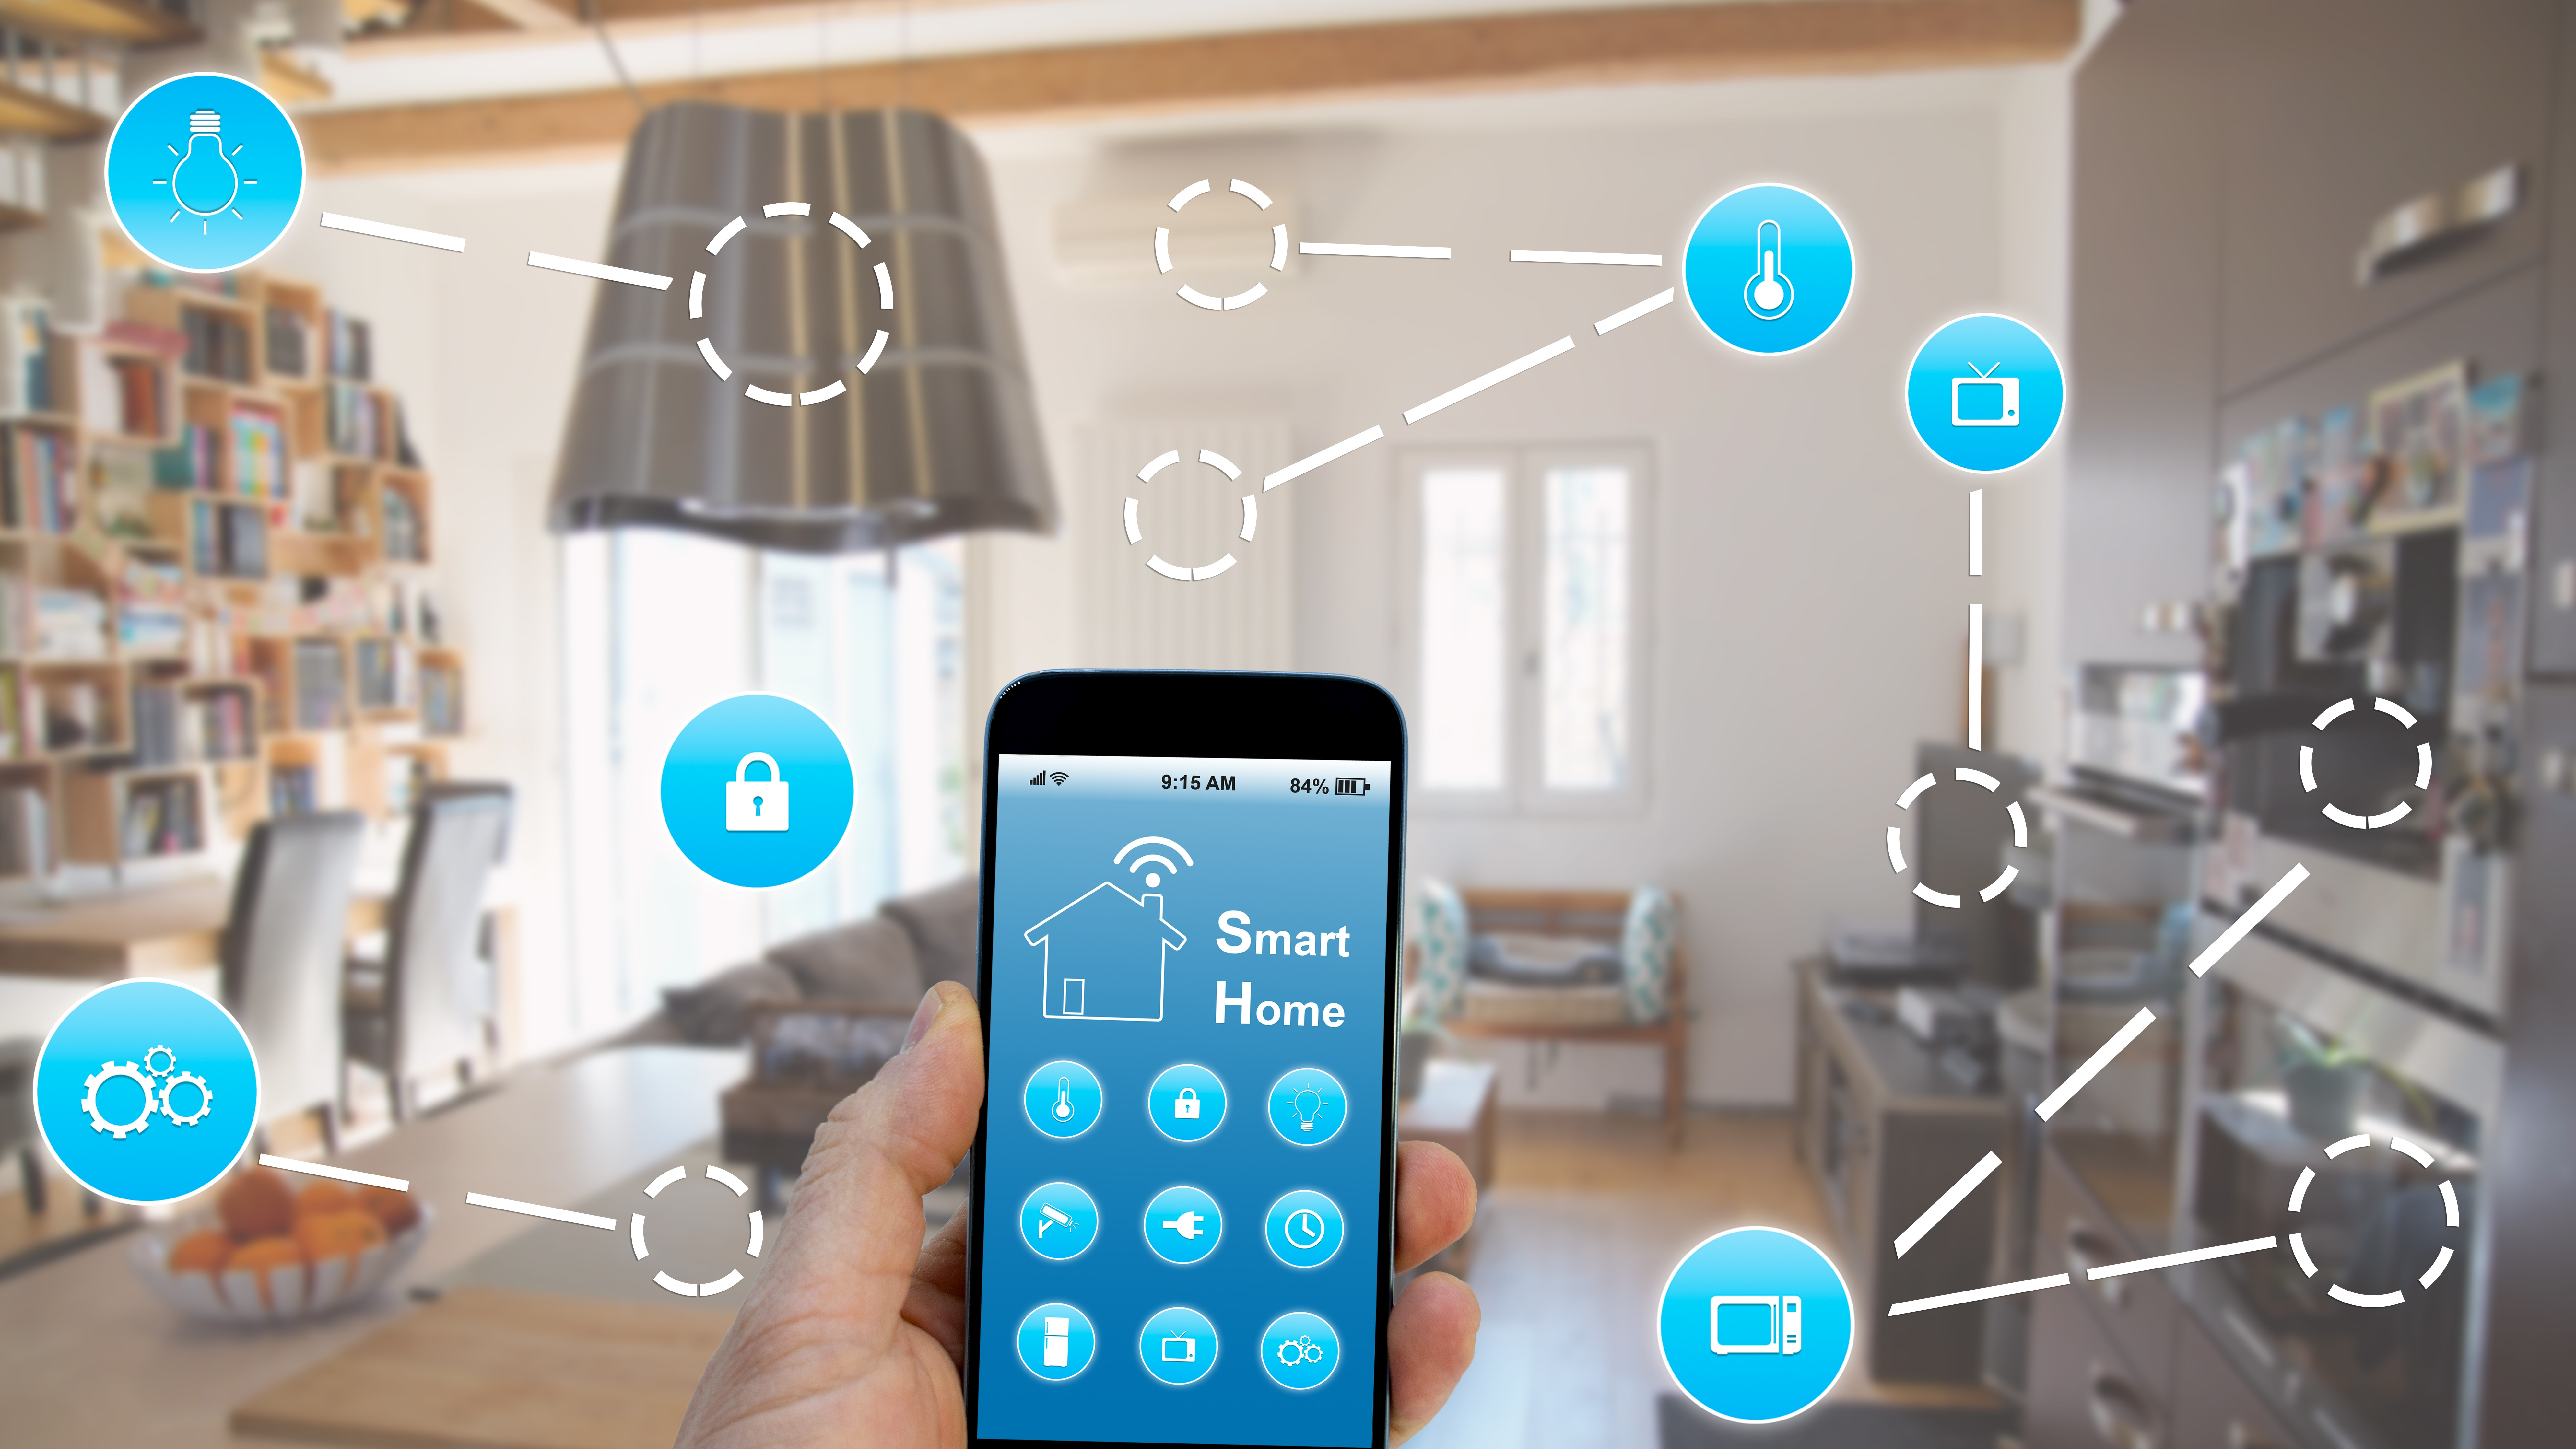 Smart home devices are being hit with more cyberattacks than ever